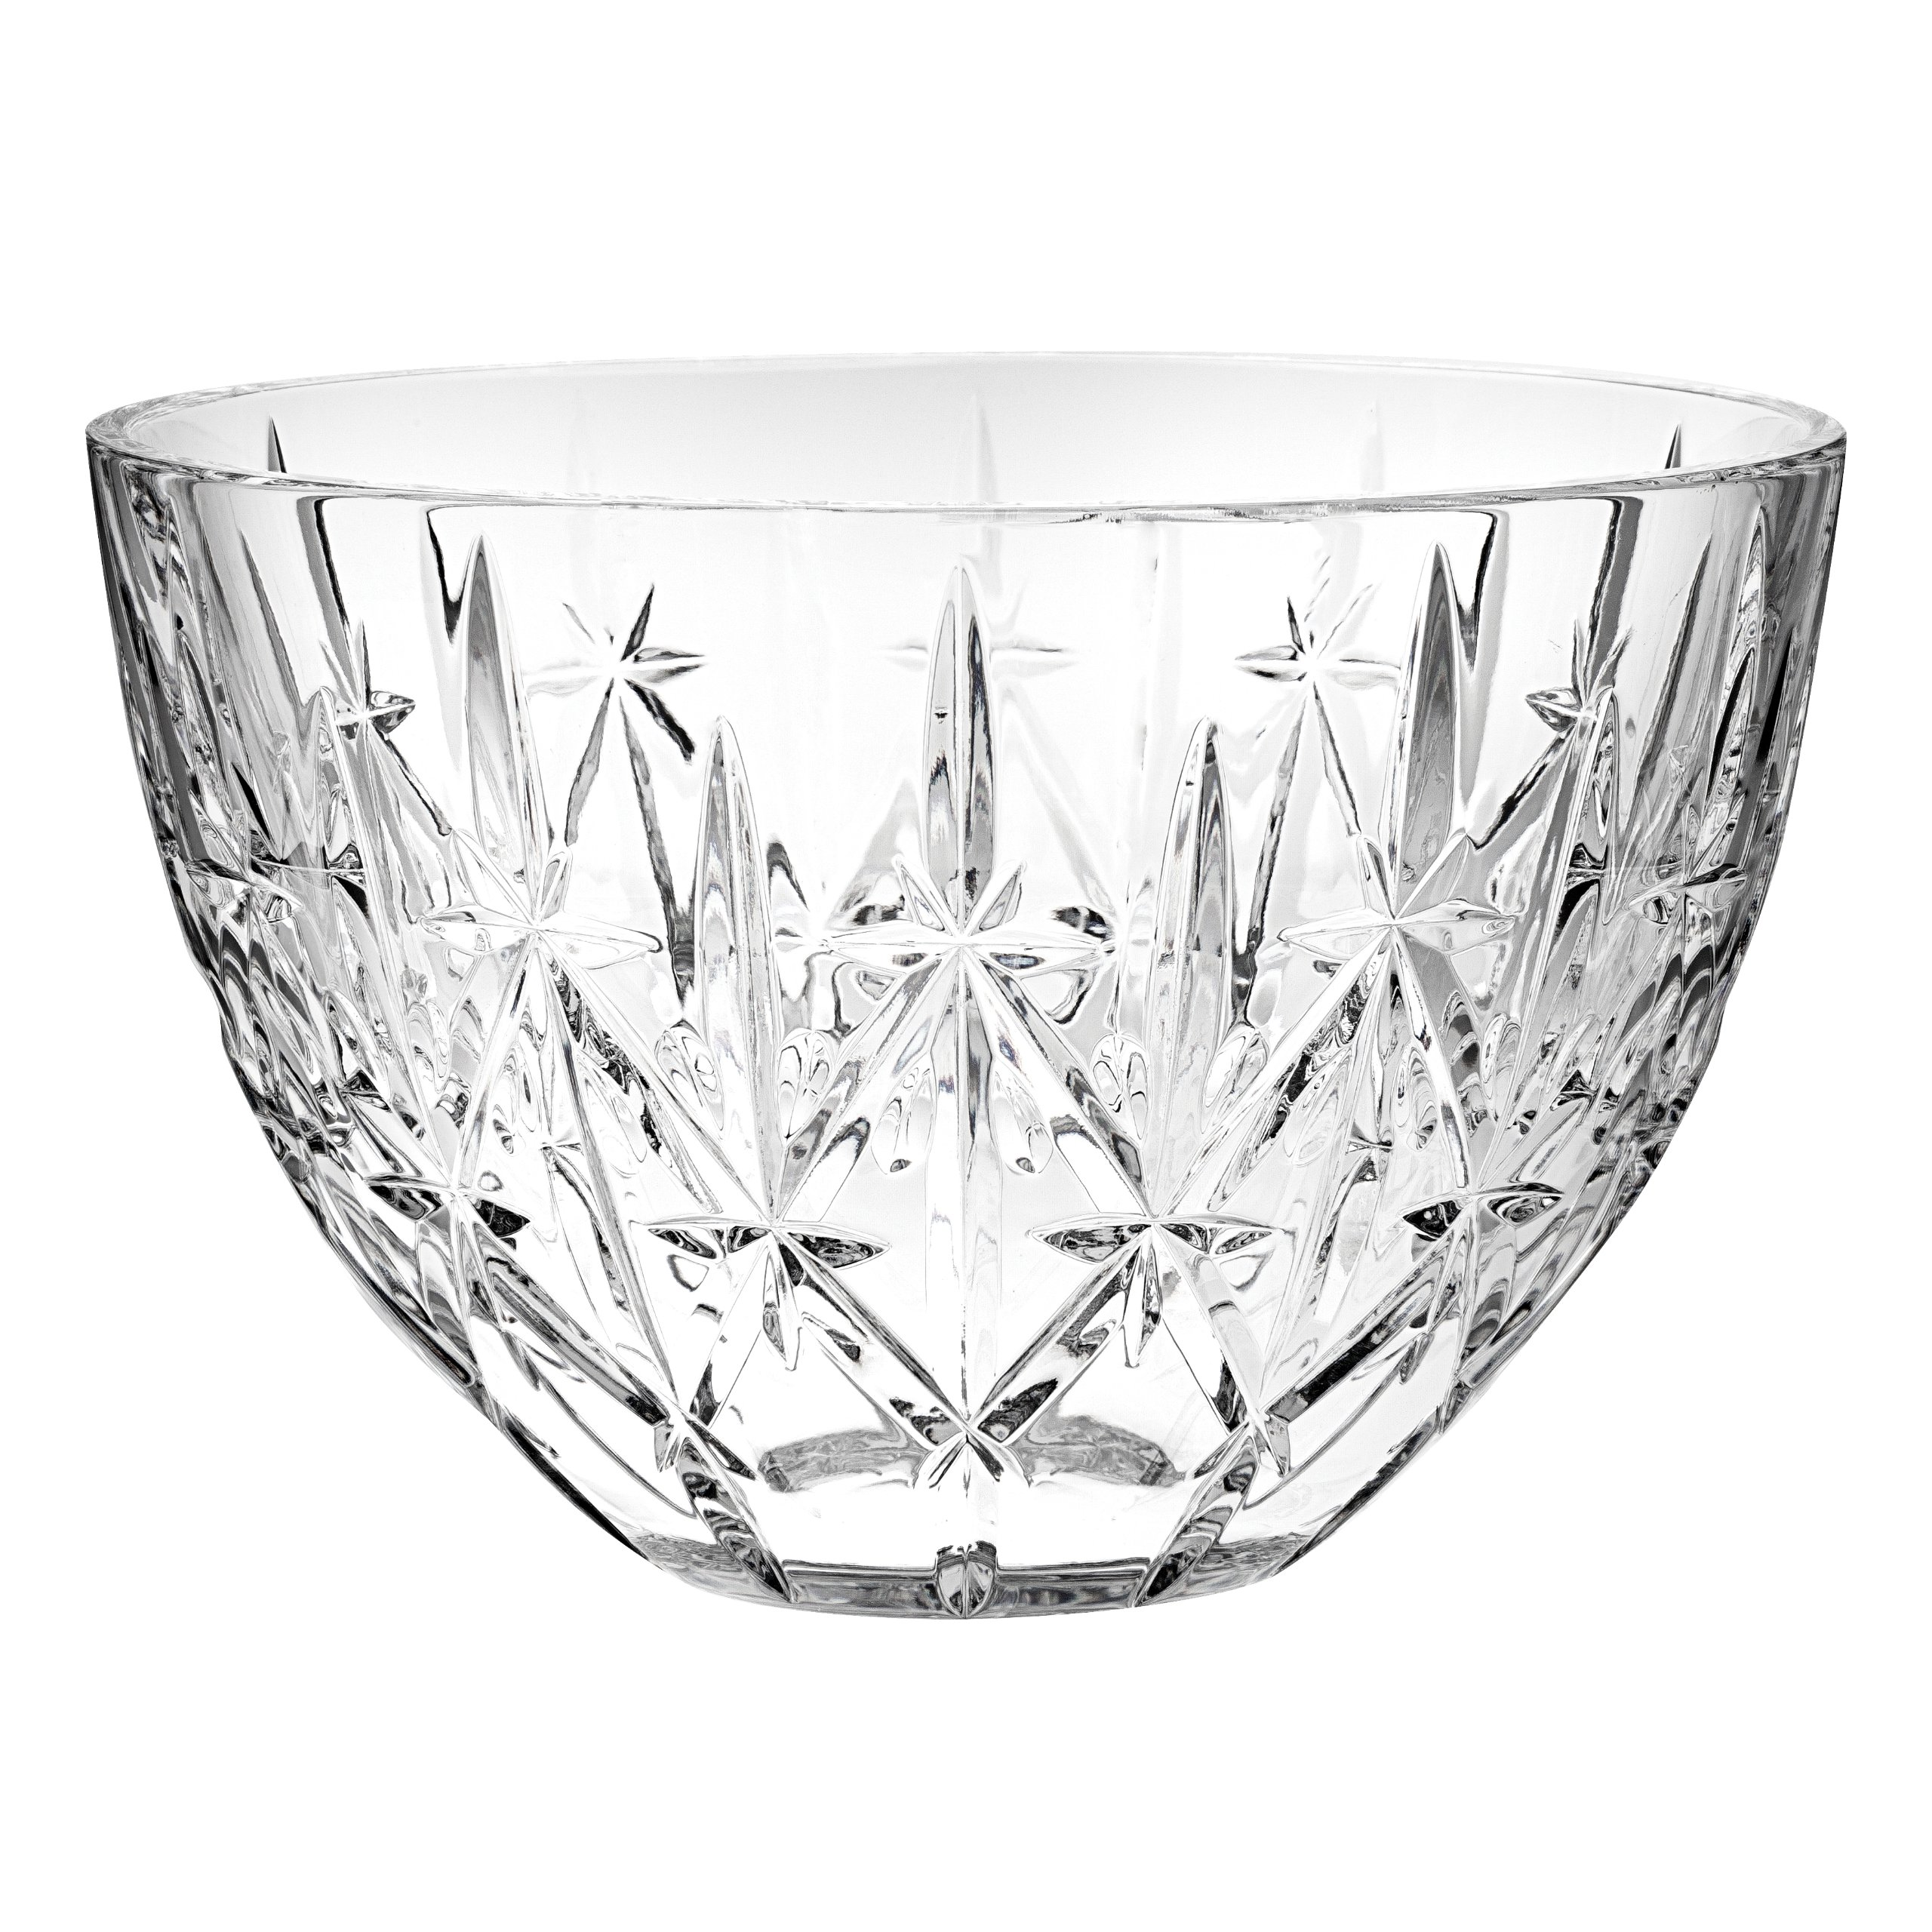 Marquis By Waterford Sparkle Bowl 9'' by Marquis By Waterford